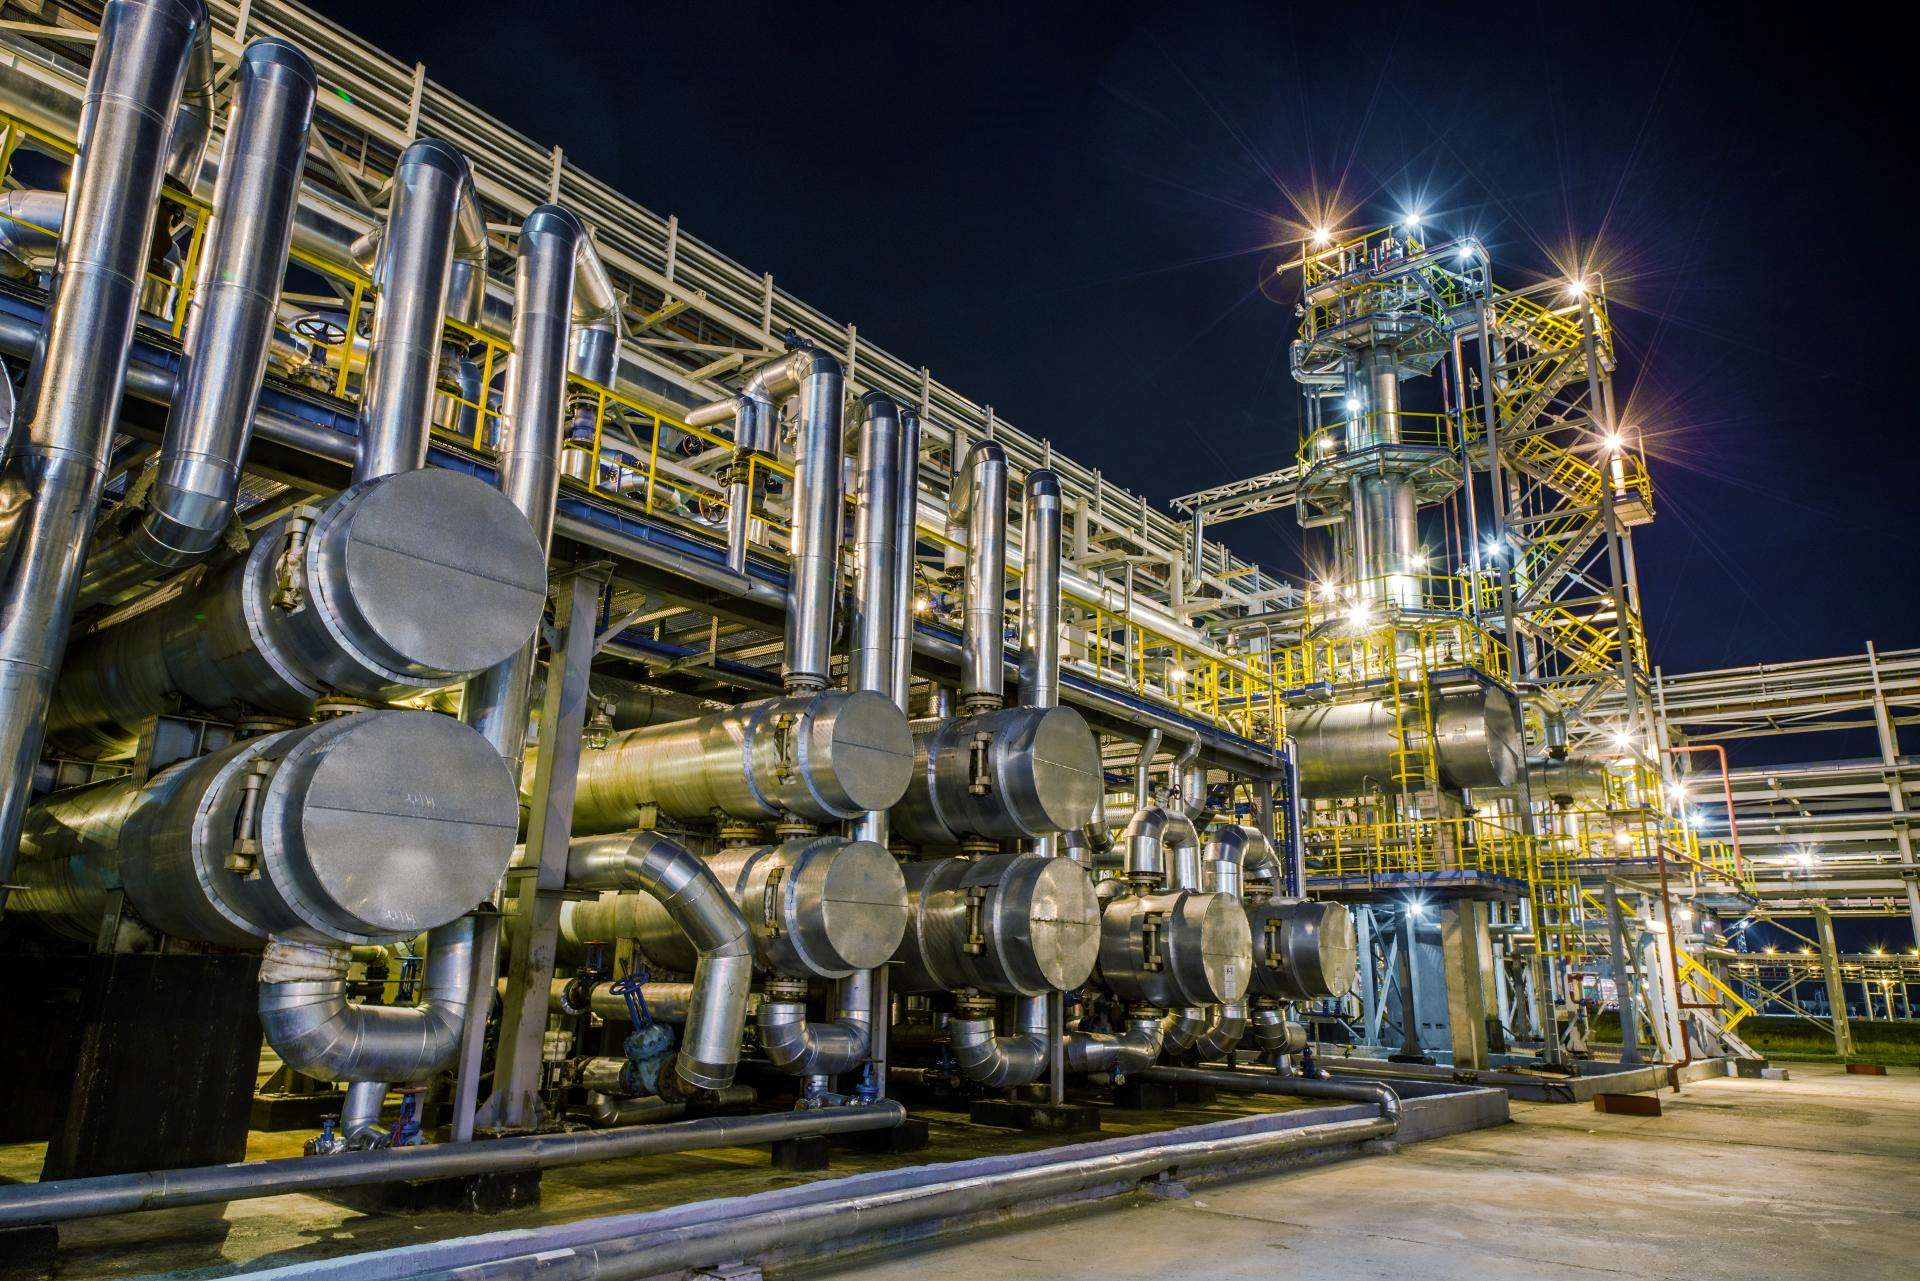 Oil and Gas Refinery at Night (Reduced File Size)